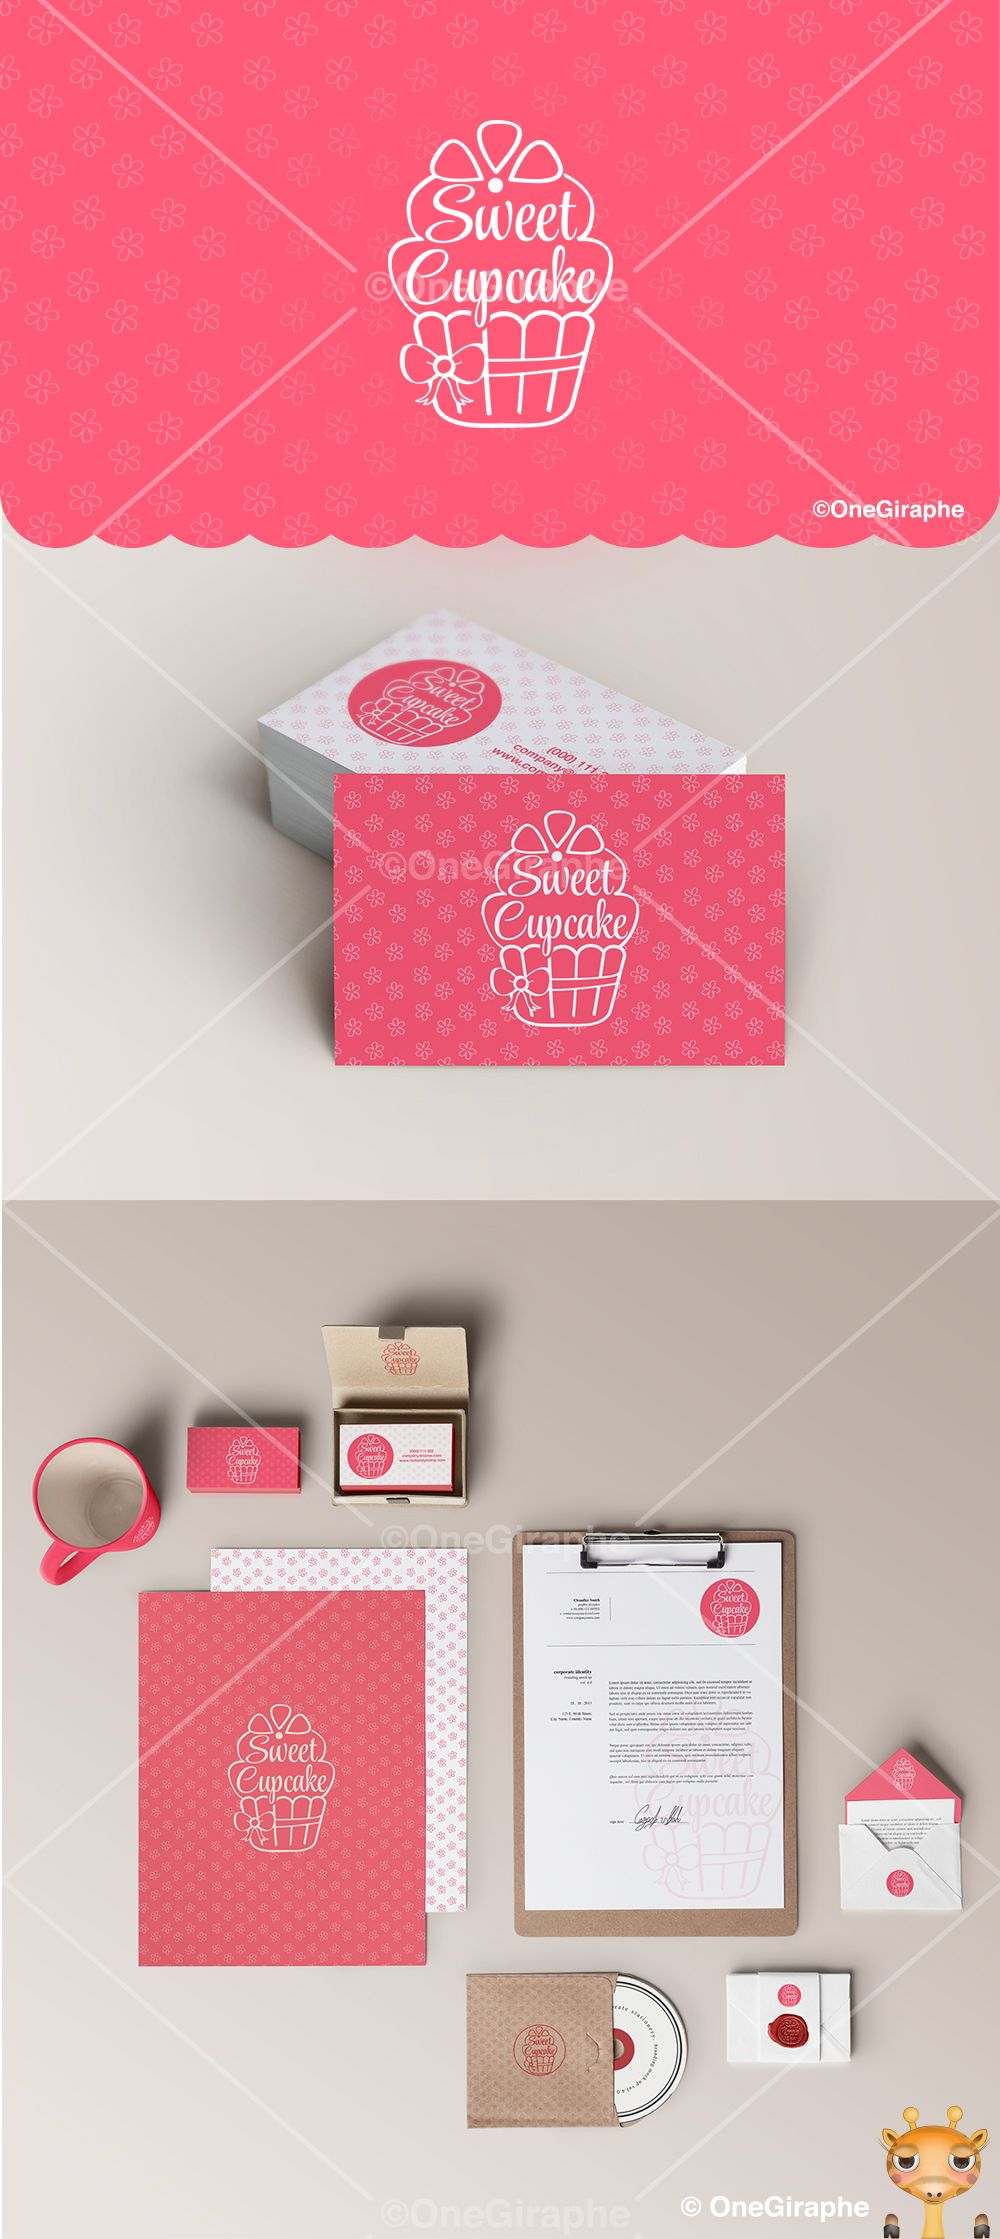 sweet cupcakes logo for sale contact me at onegiraphe gmail